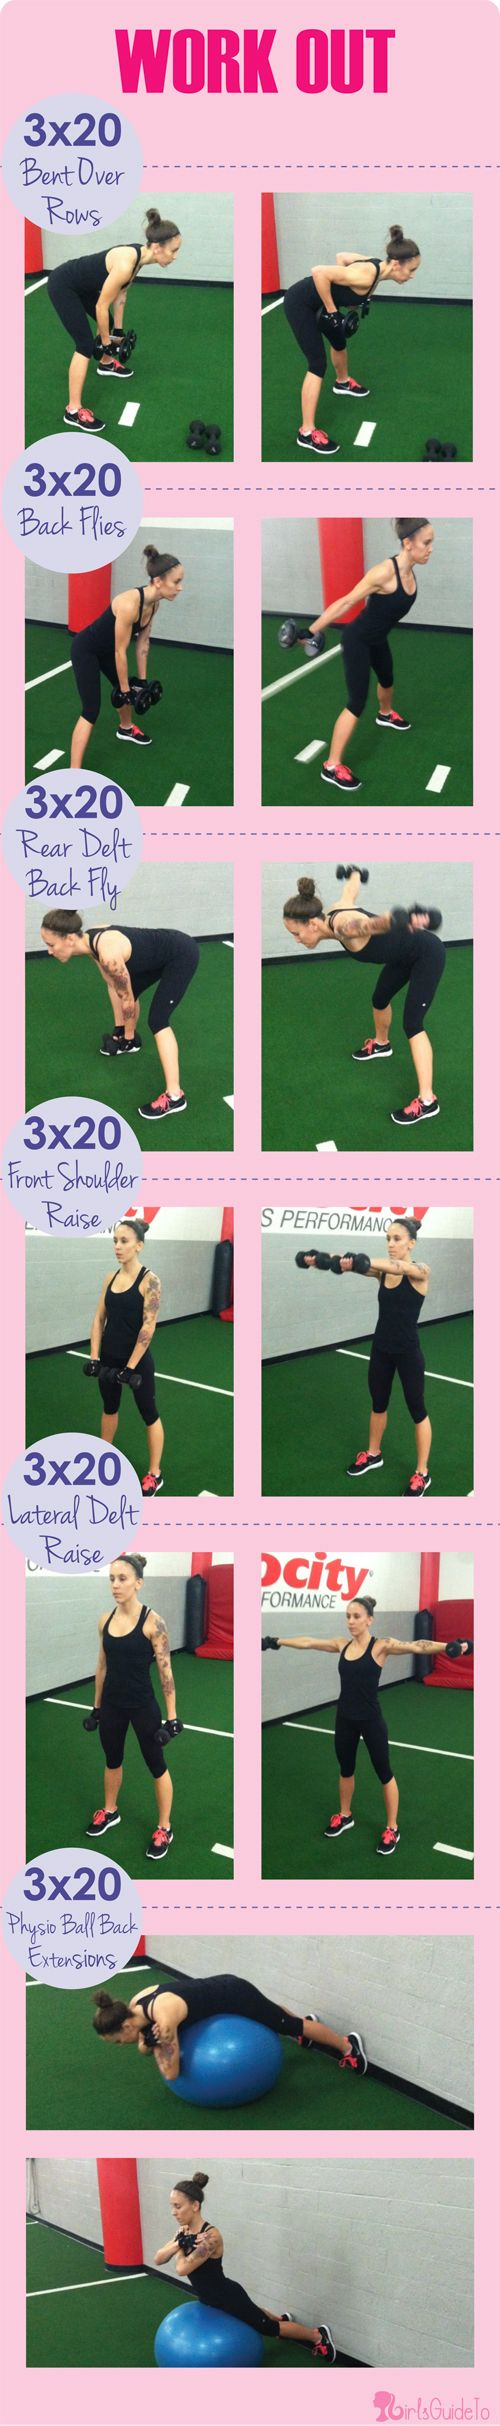 Workout Wednesday: Stand Up Straight Forever! | GirlsGuideTo